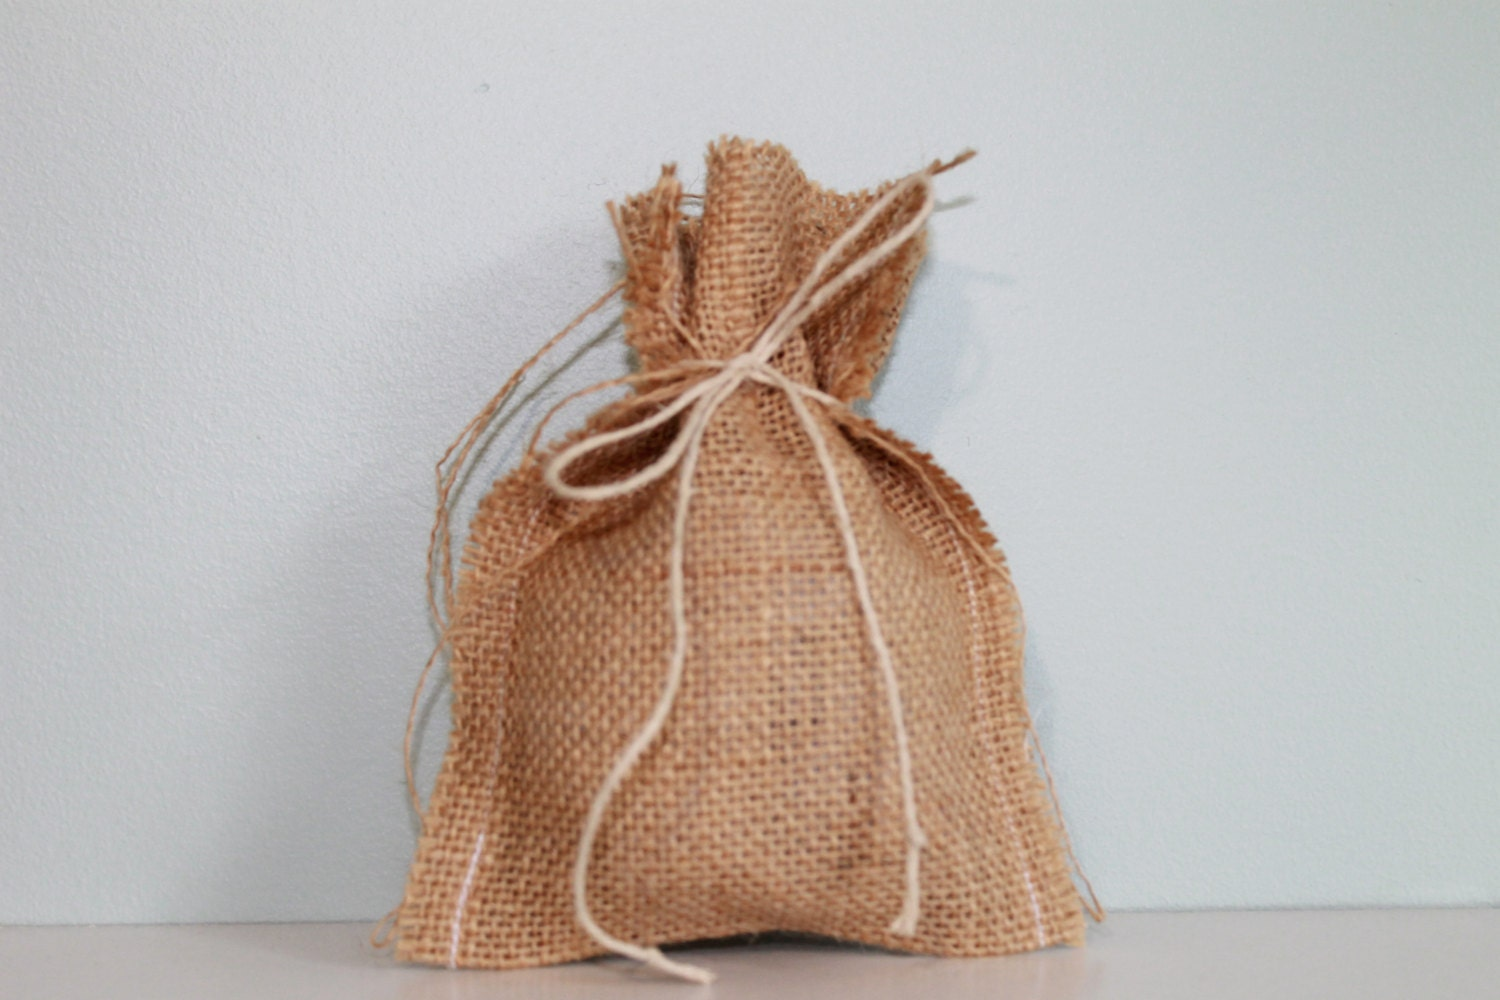 burlap wedding favor bags with twine ties available in bulk